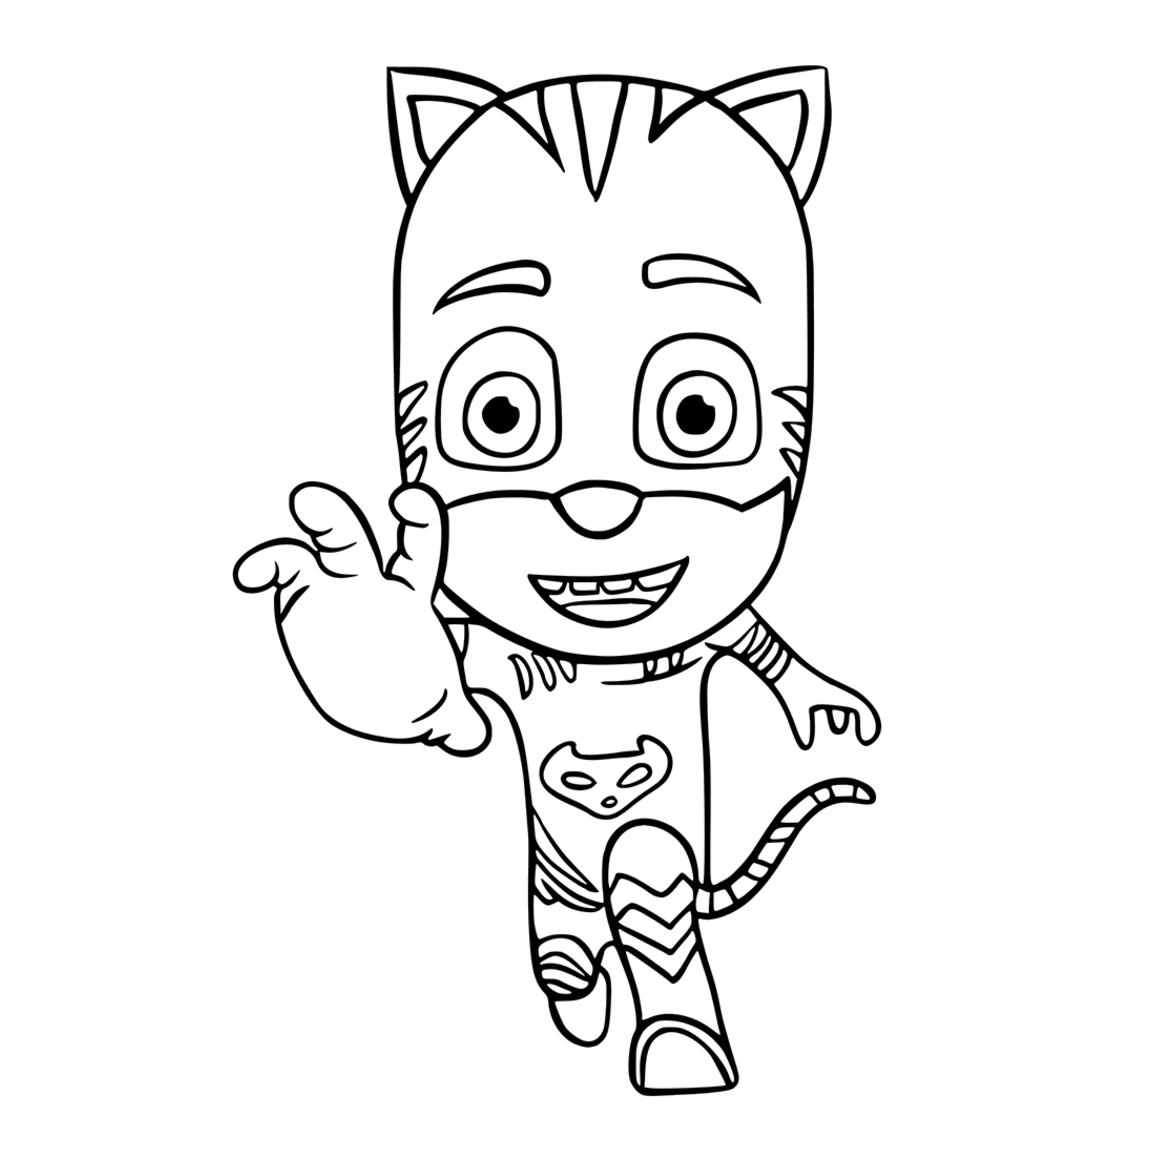 Free coloring pages pj masks - Pj Masks Party Printables For Free